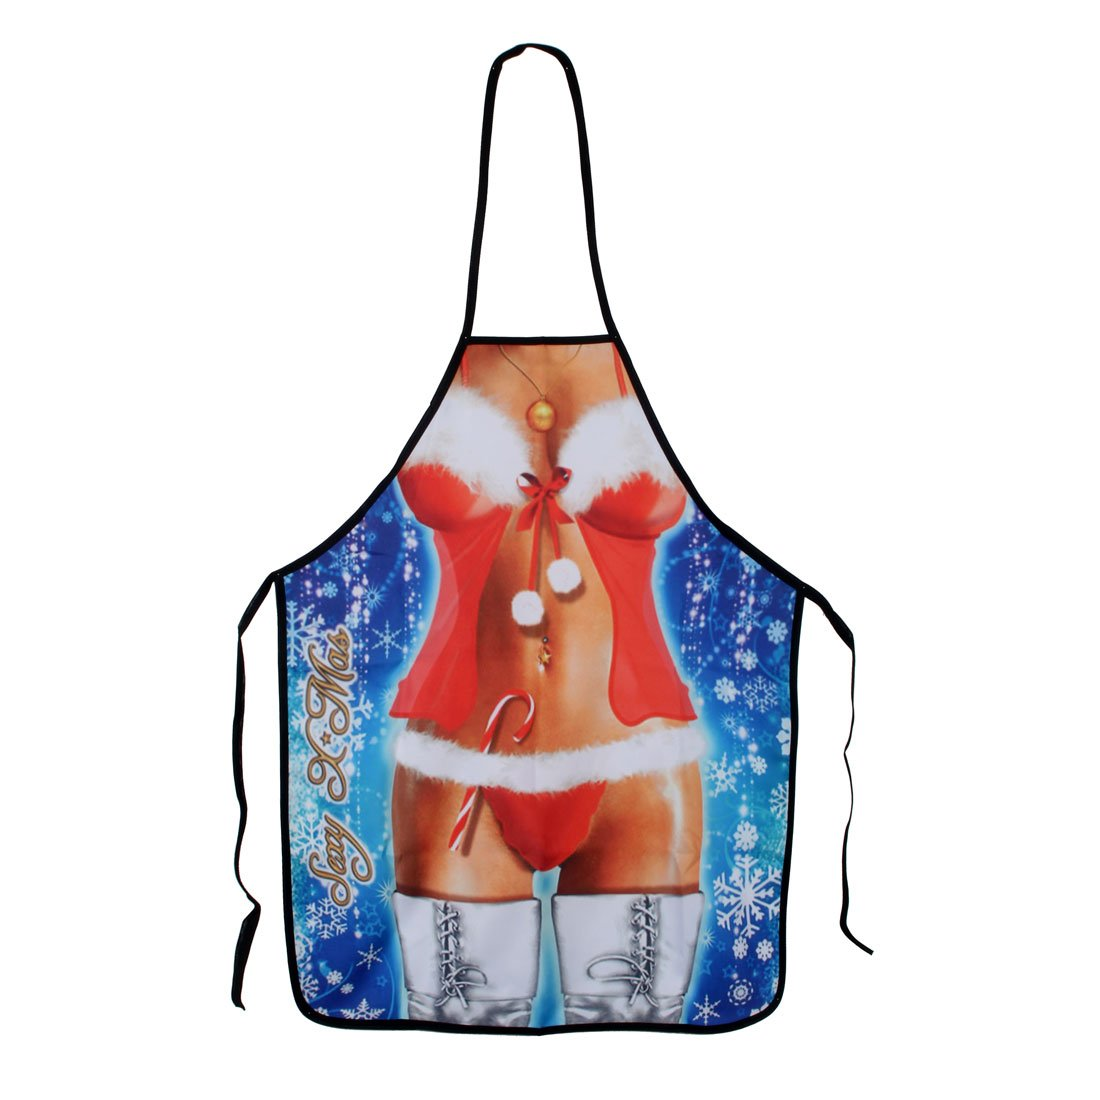 AFUT Men's Sexy Novelty Aprons Rugby Player,BBQ Cooking Aprons(Rugby Player) M3006-CN-LSY-BB1